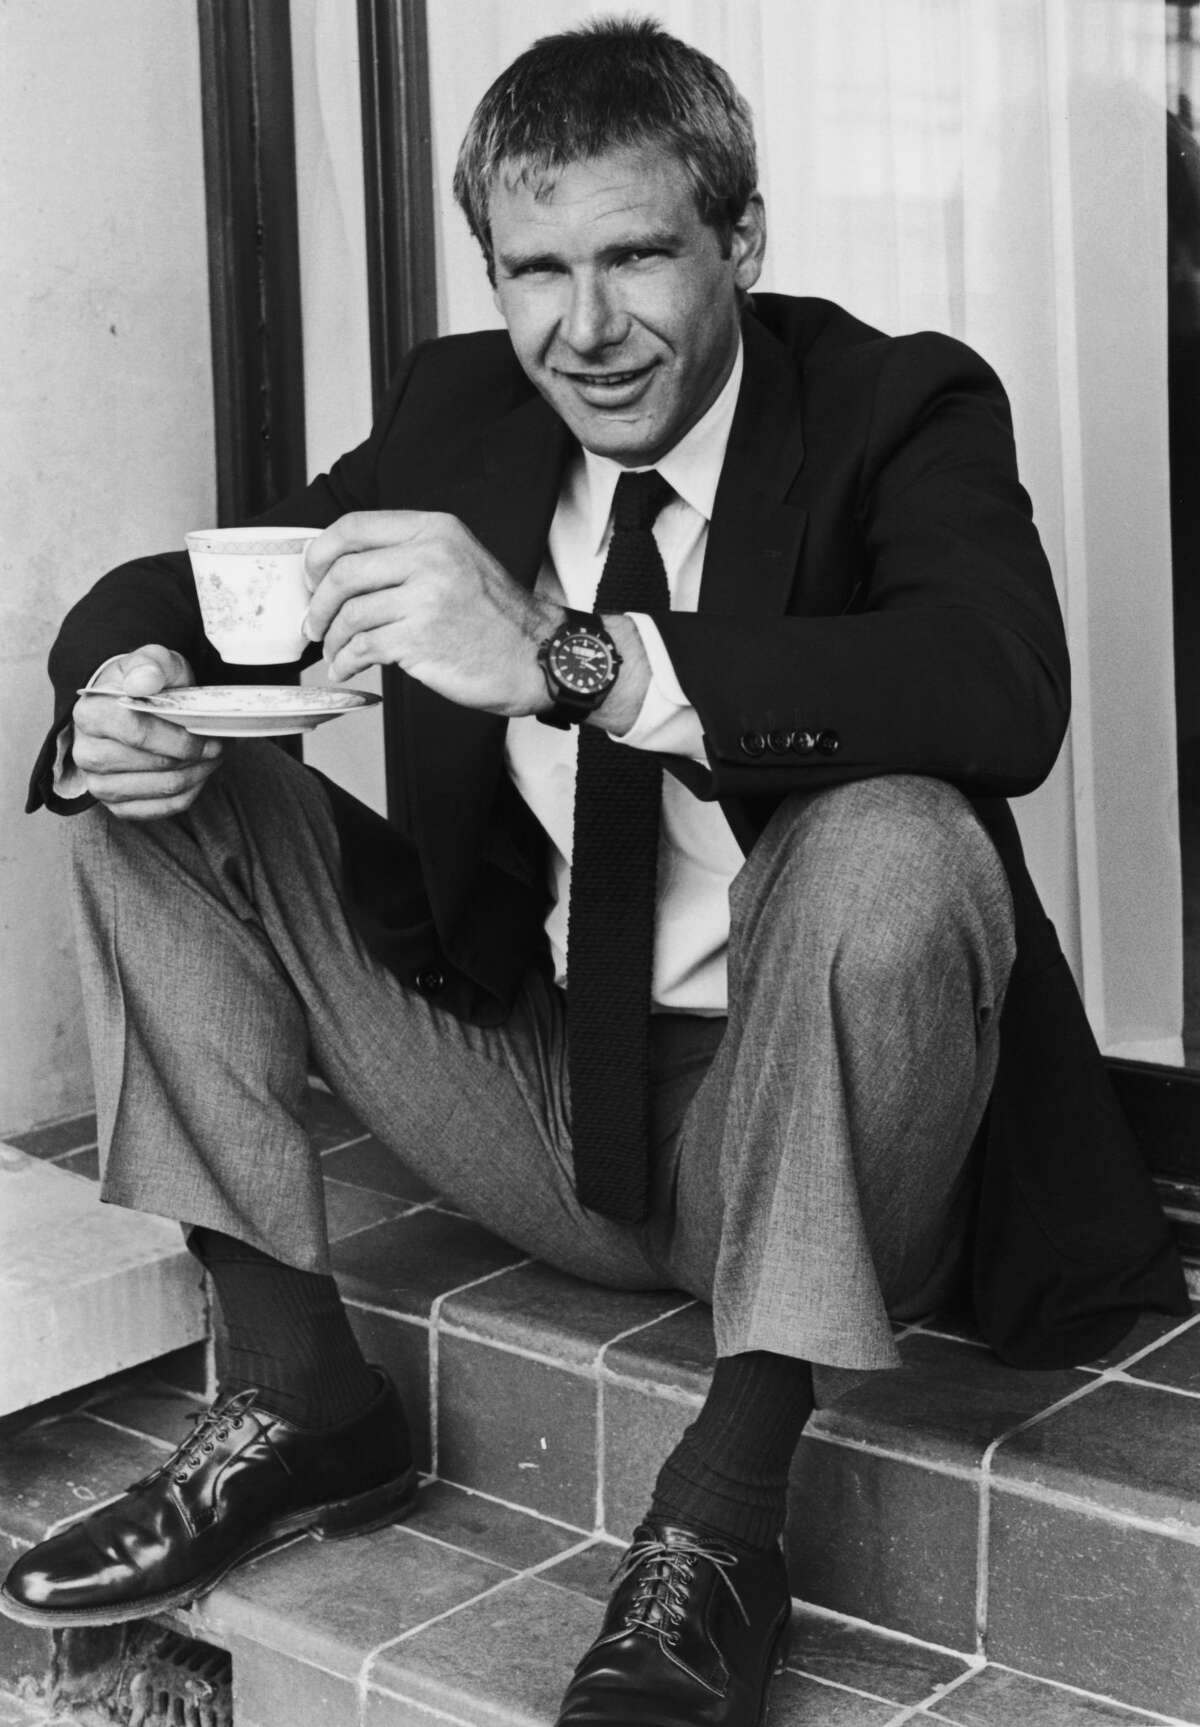 Click through this gallery to see Harrison Ford through the years. circa 1984: American actor Harrison Ford sits on steps, smiling while holding a teacup and saucer.